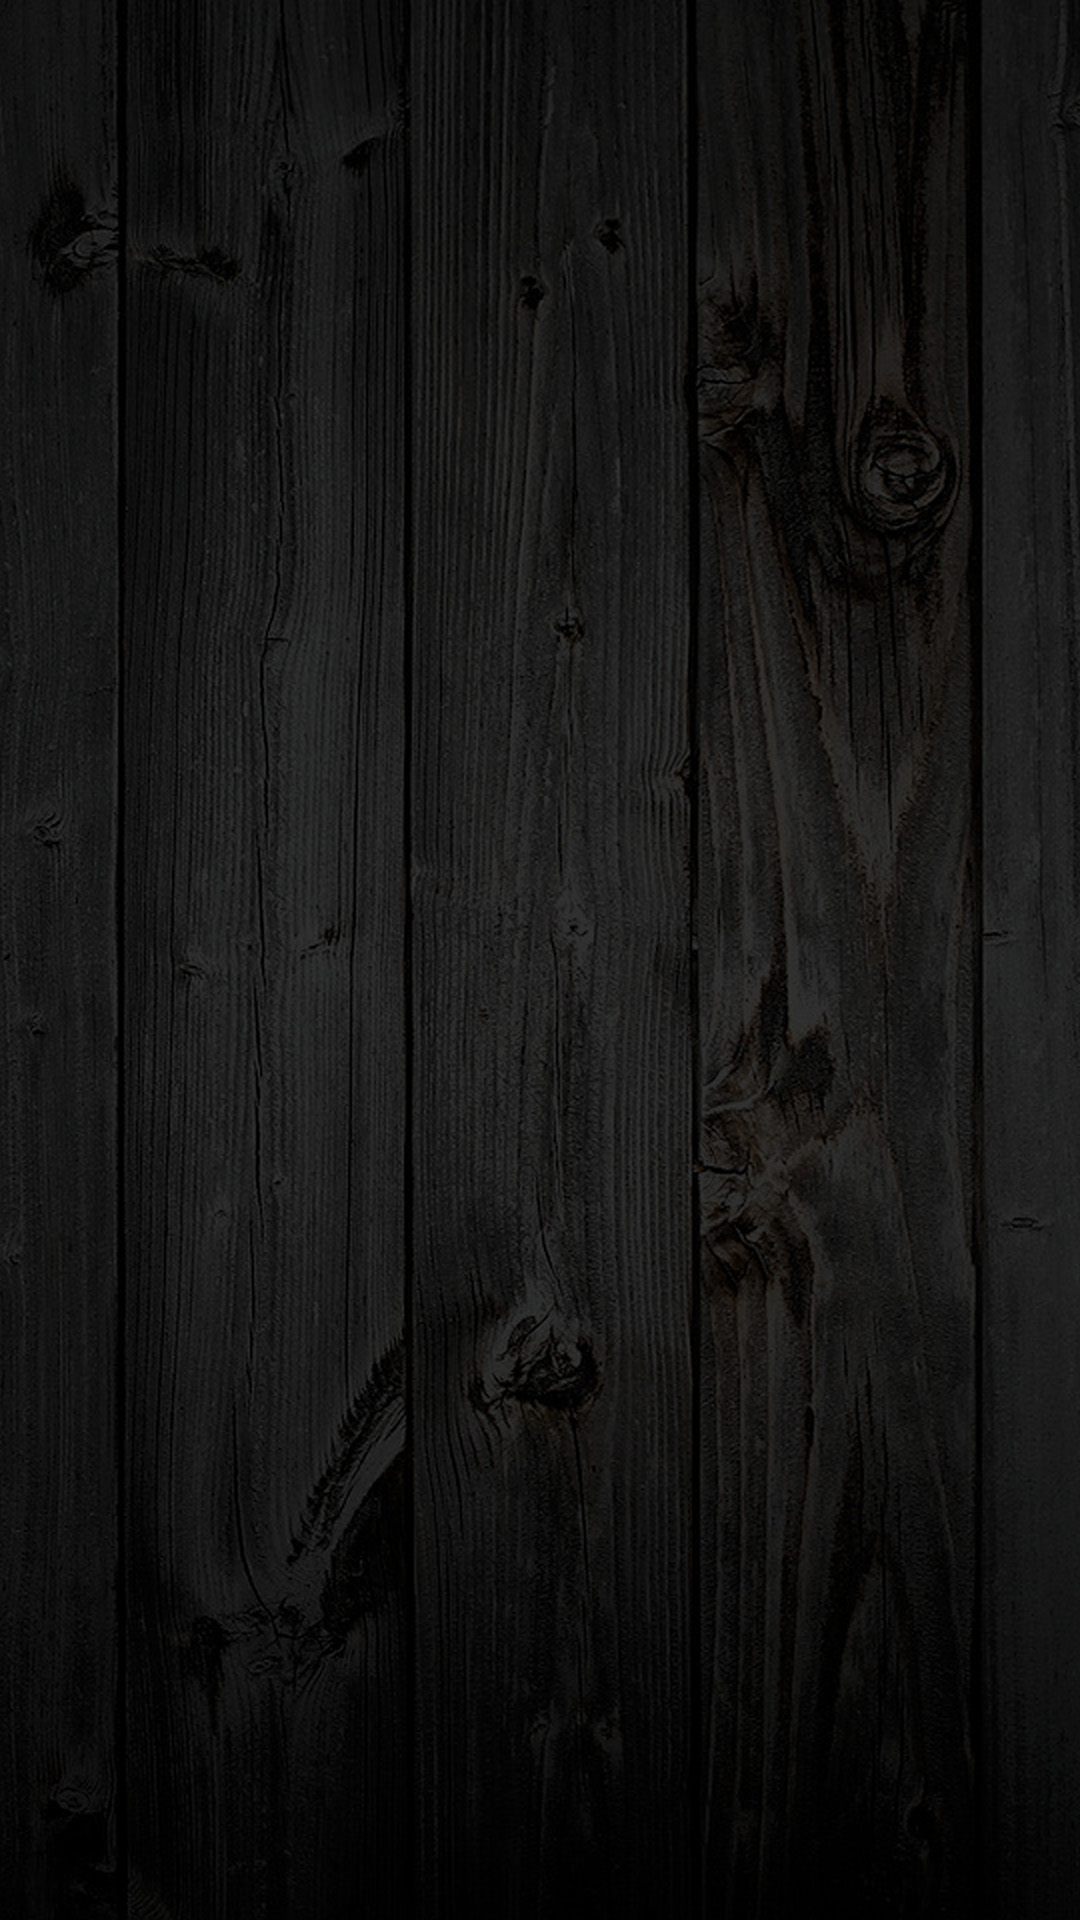 Dark Wallpaper For Mobile Phone Background Dark wood t...